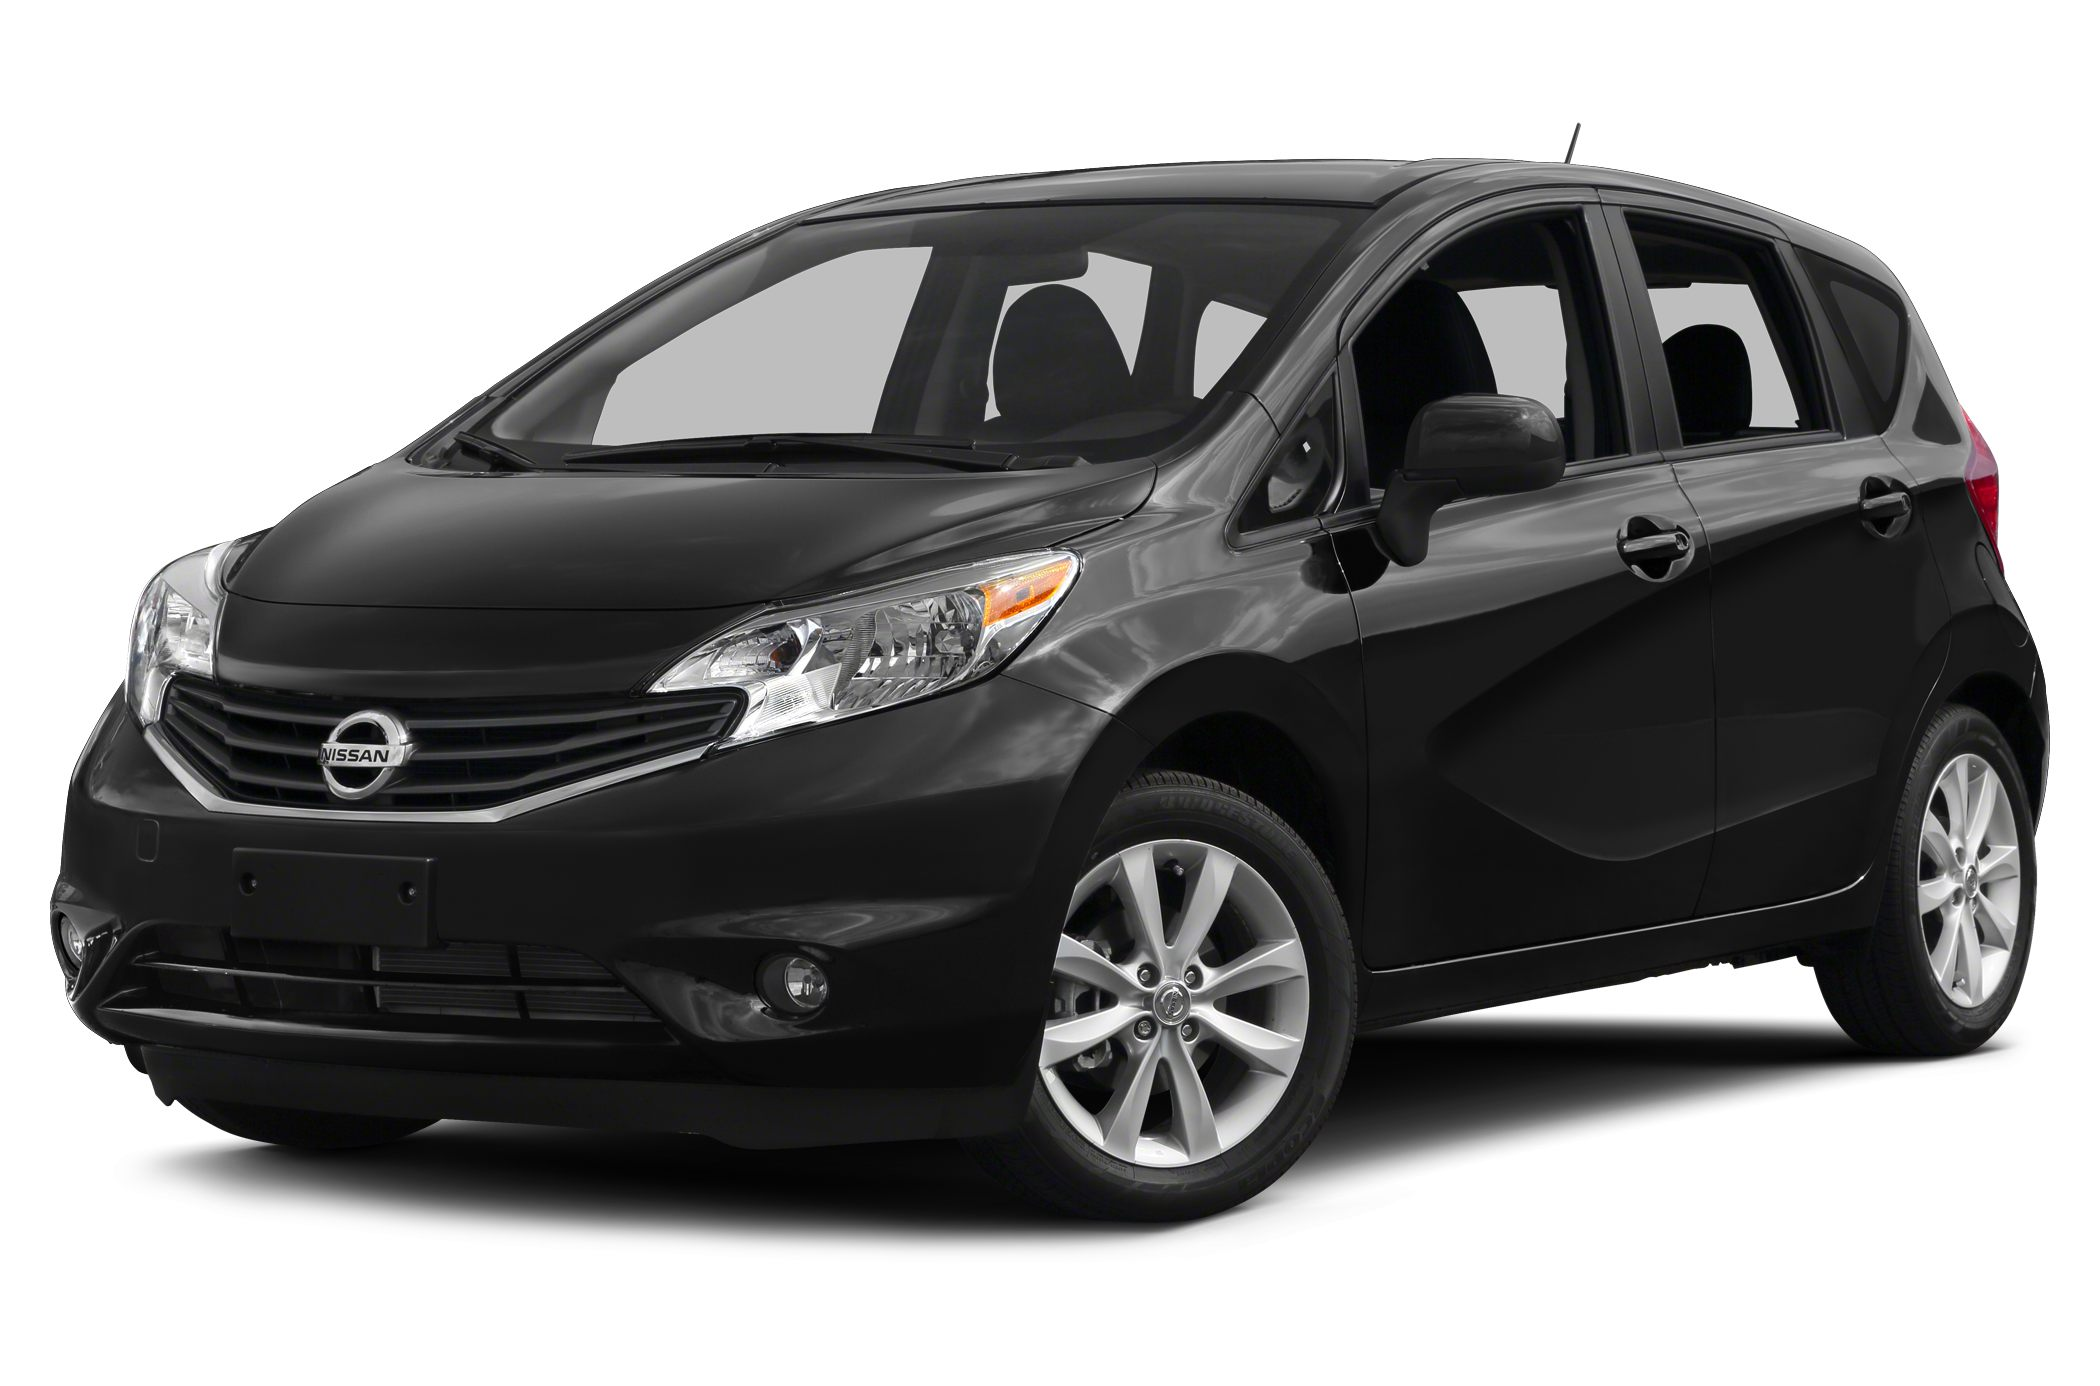 2014 Nissan Versa Note SV Hatchback for sale in Allentown for $14,997 with 8,114 miles